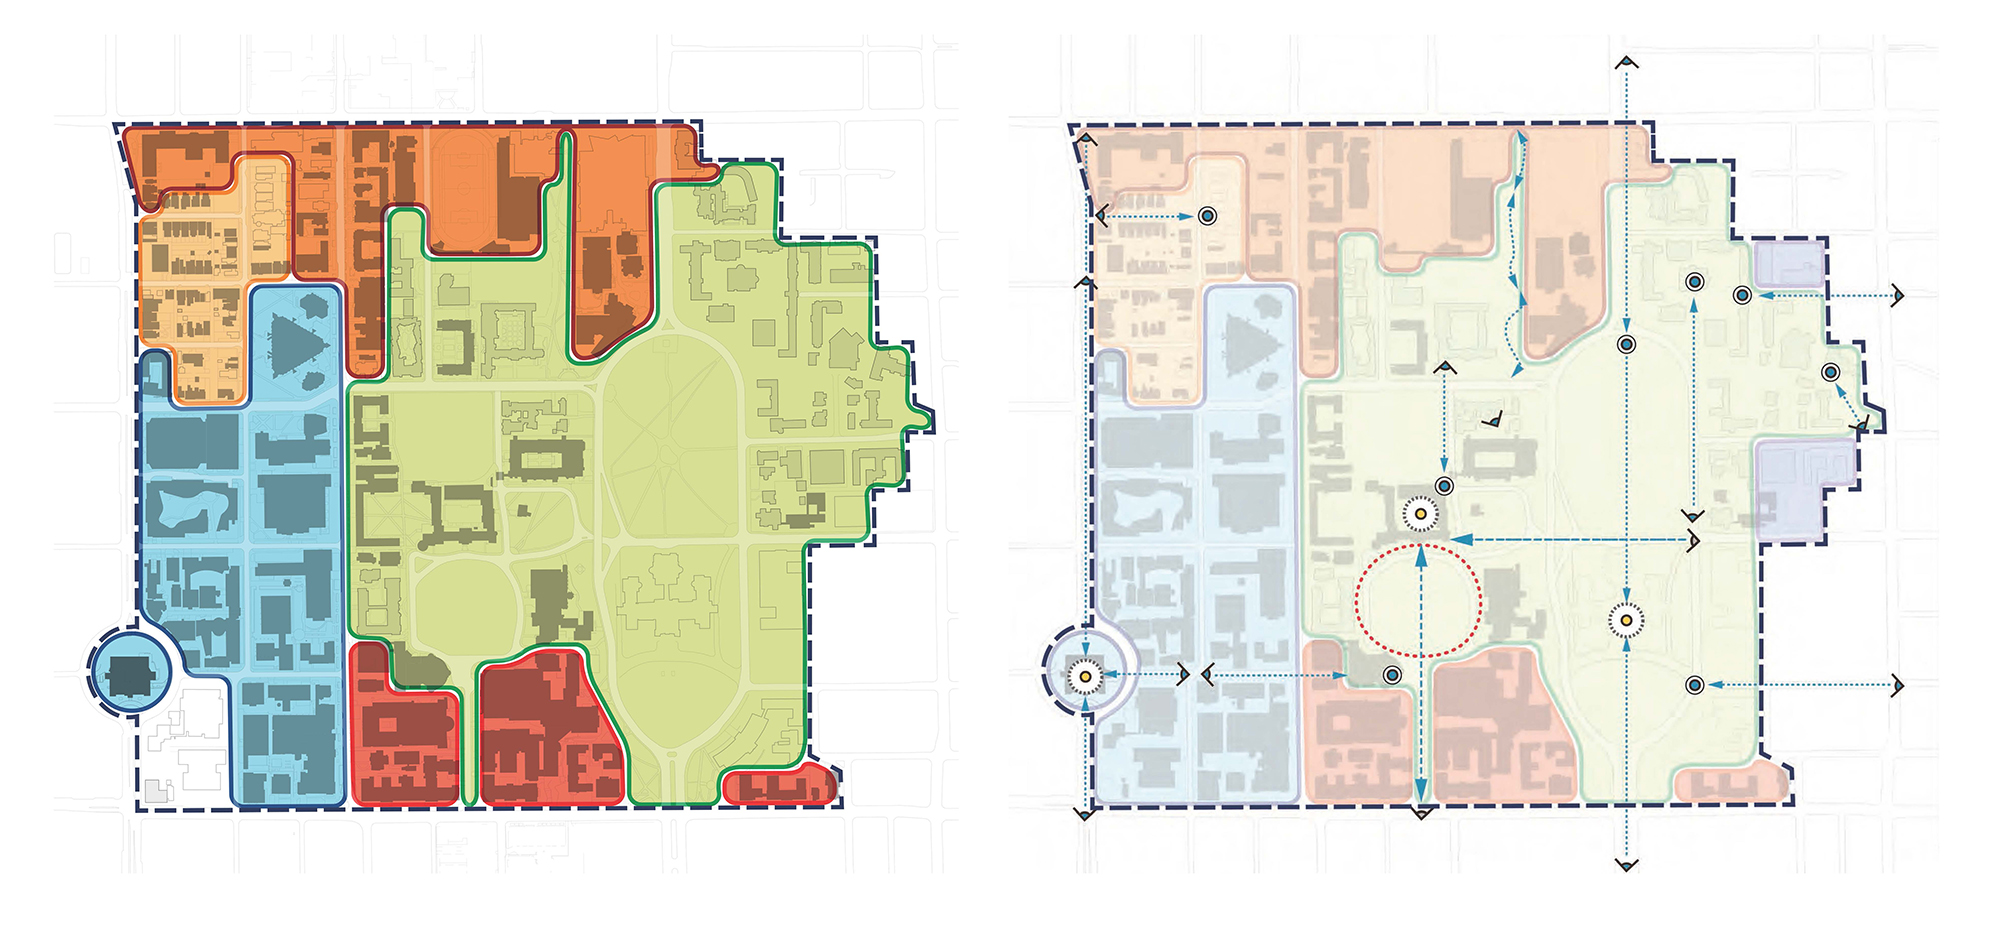 Diagram from the U of T Secondary Plan